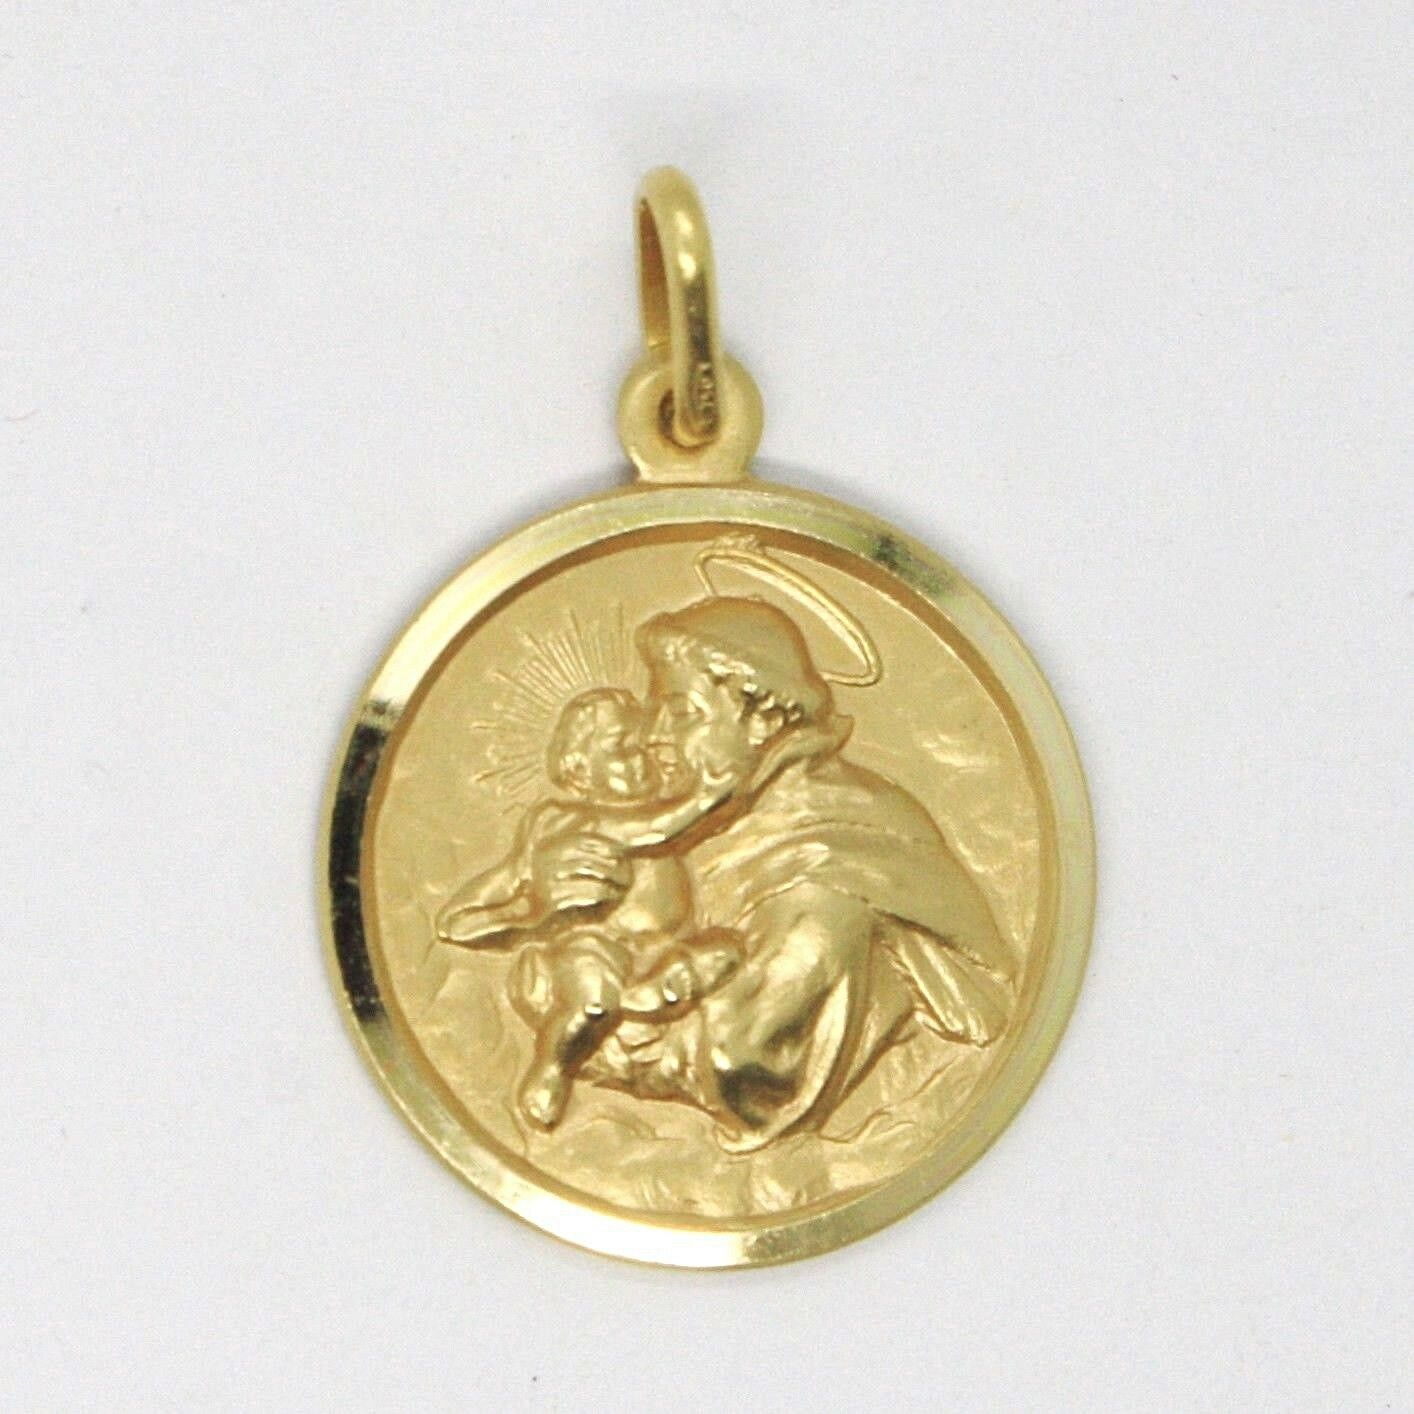 18K YELLOW GOLD ST SAINT ANTHONY PADUA SANT ANTONIO MEDAL MADE IN ITALY, 15 MM